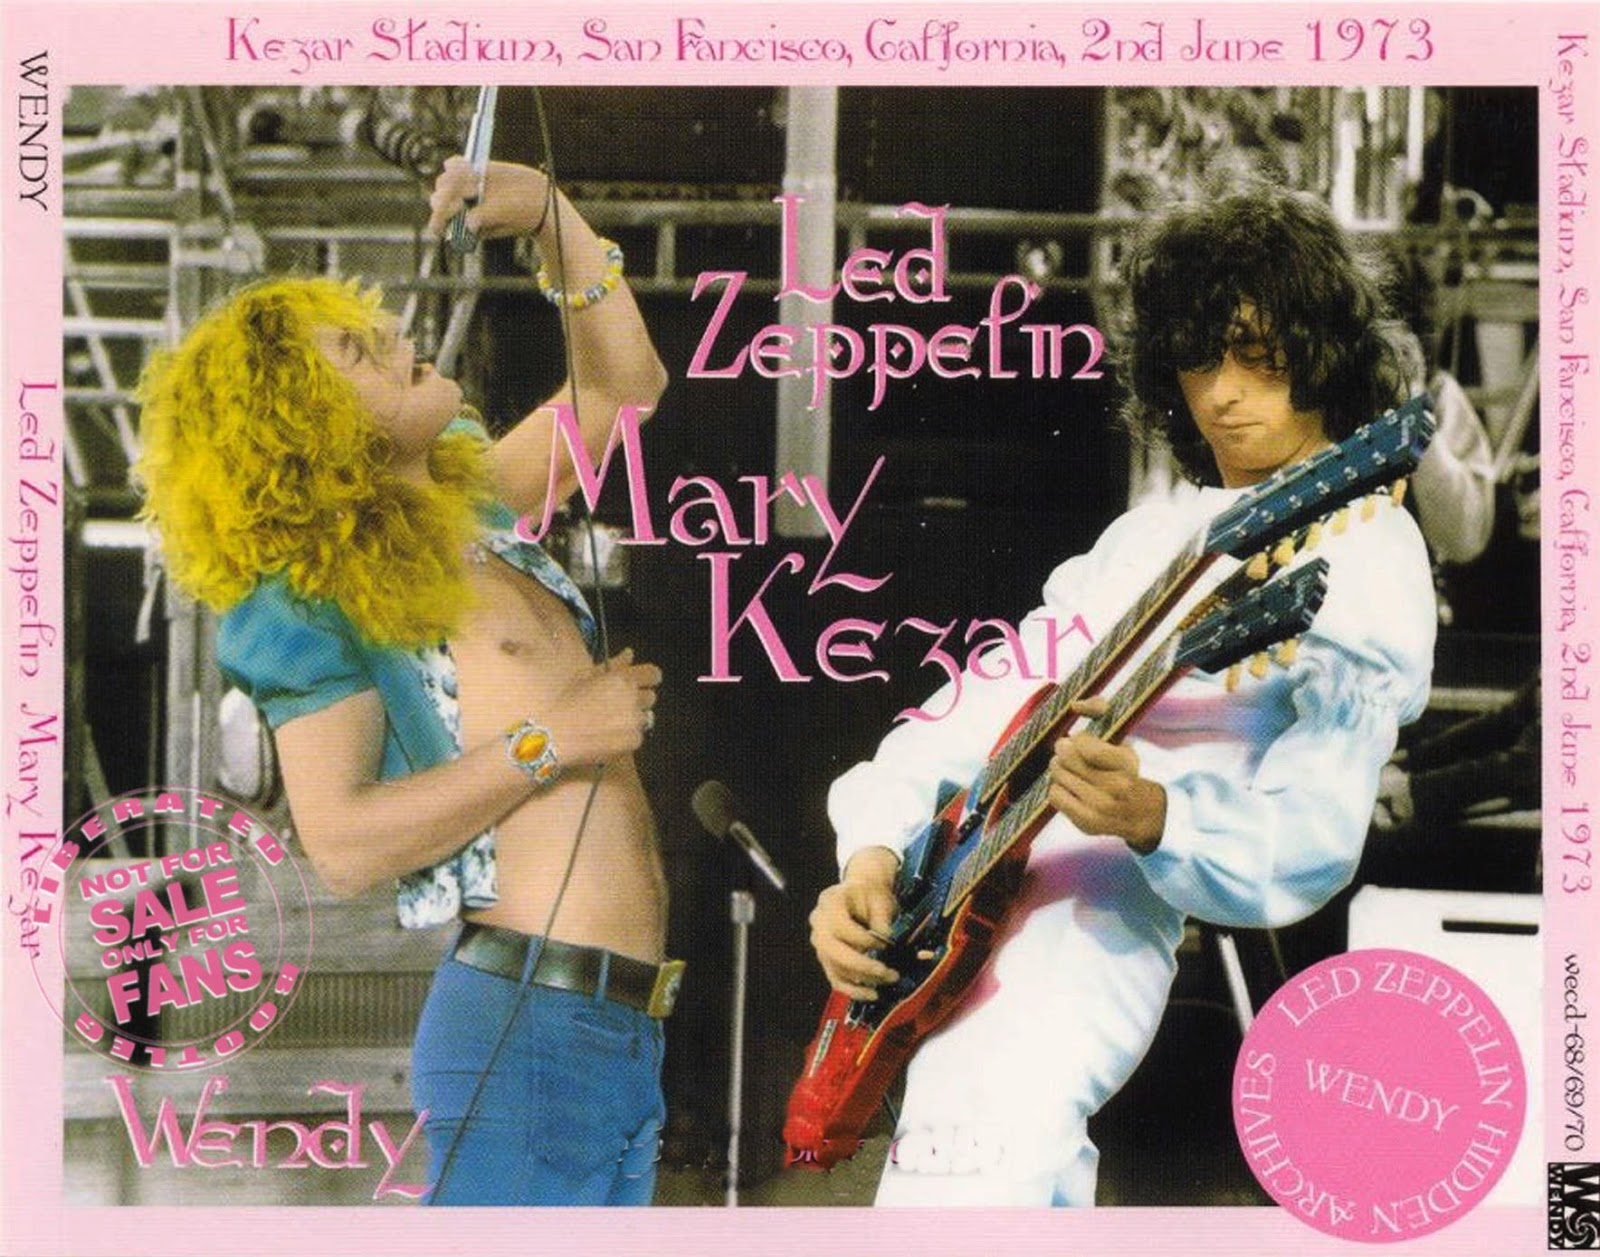 1973 - Led Zeppelin - Mary Kezar - San Francisco